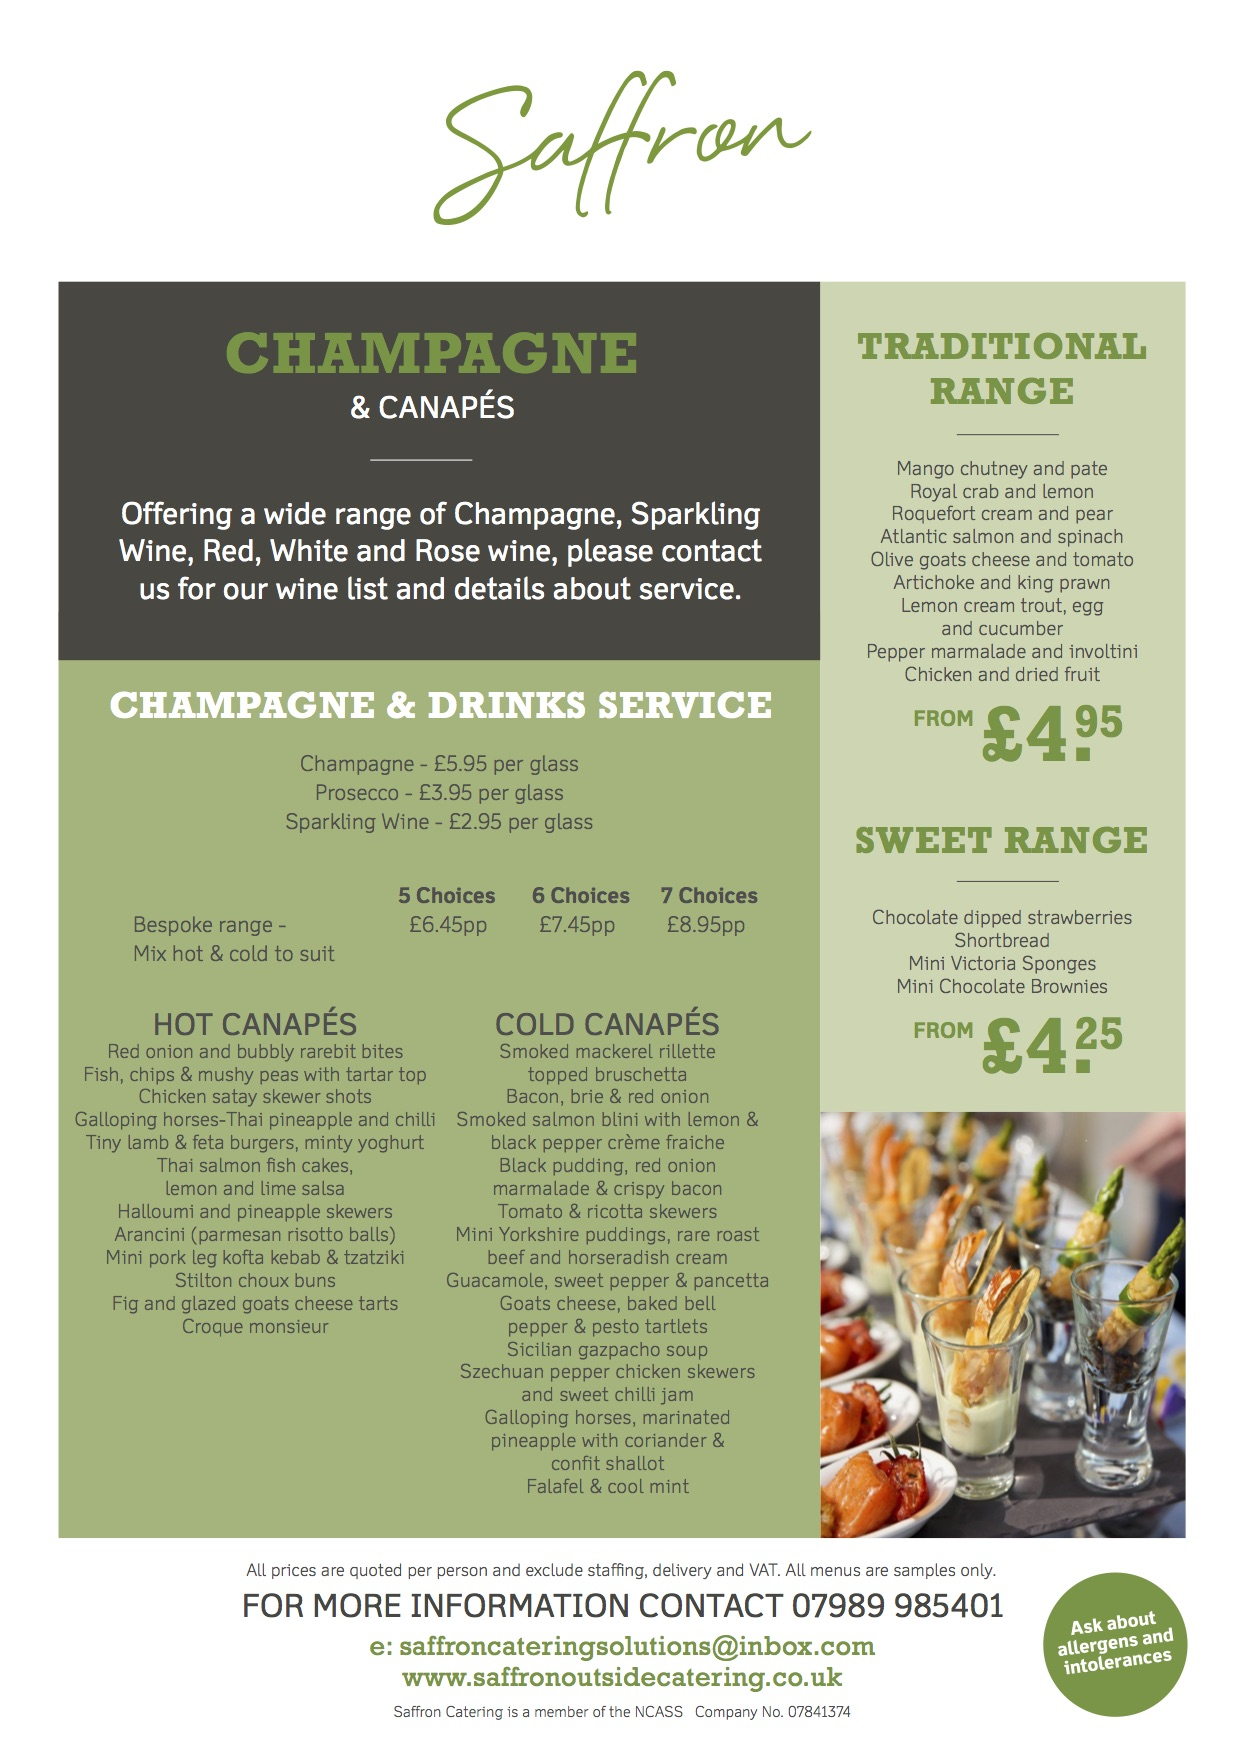 CHAMPAGNE AND CANAPES 1 - Champagne and Canapes